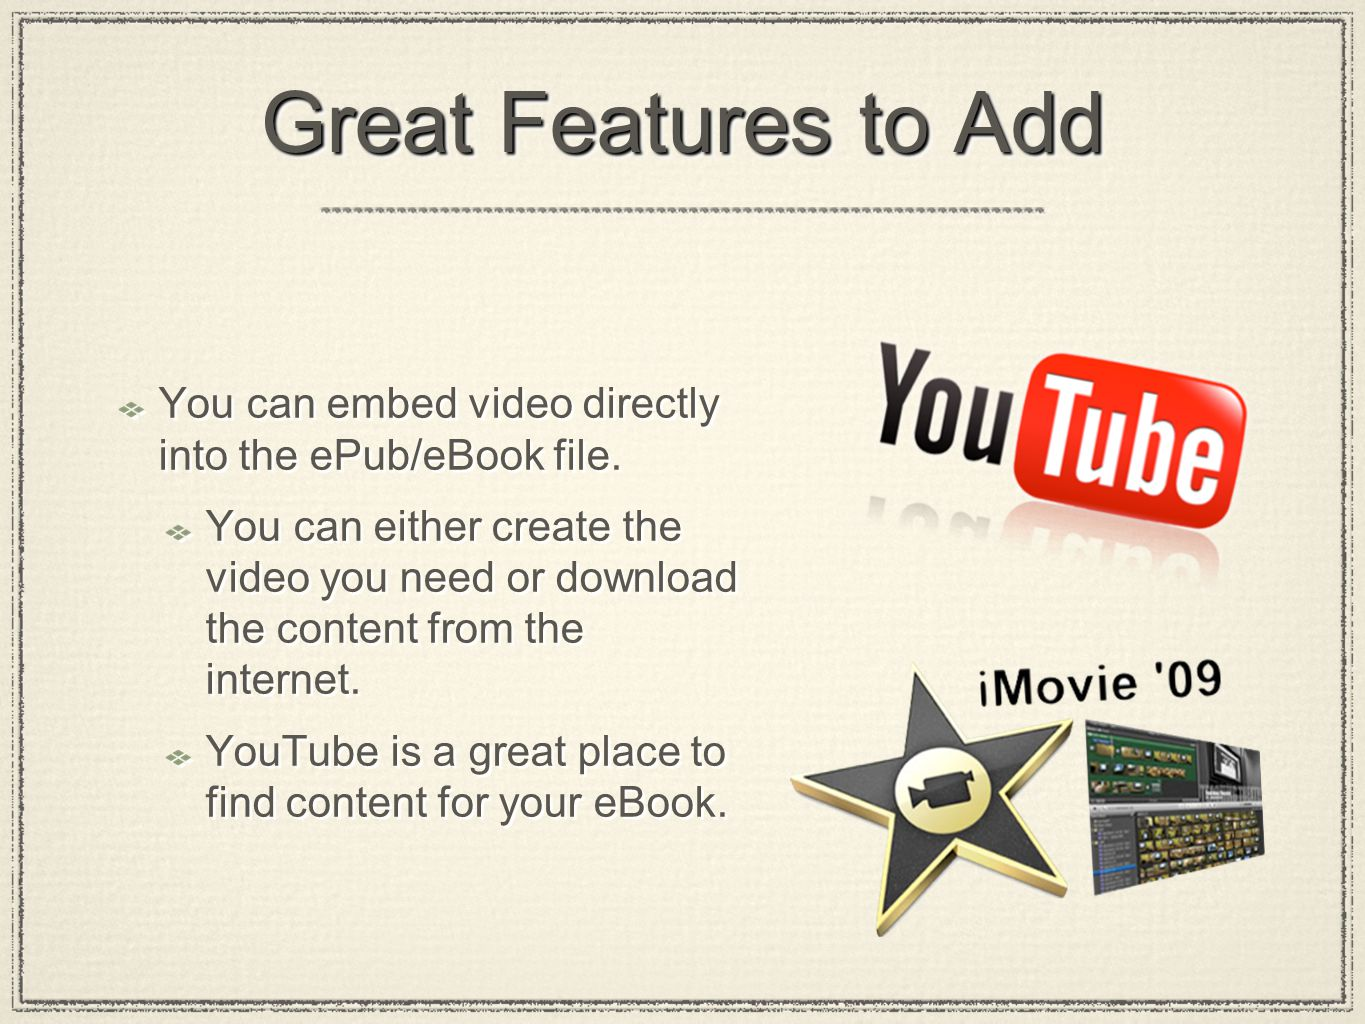 Great Features to Add You can embed video directly into the ePub/eBook file.